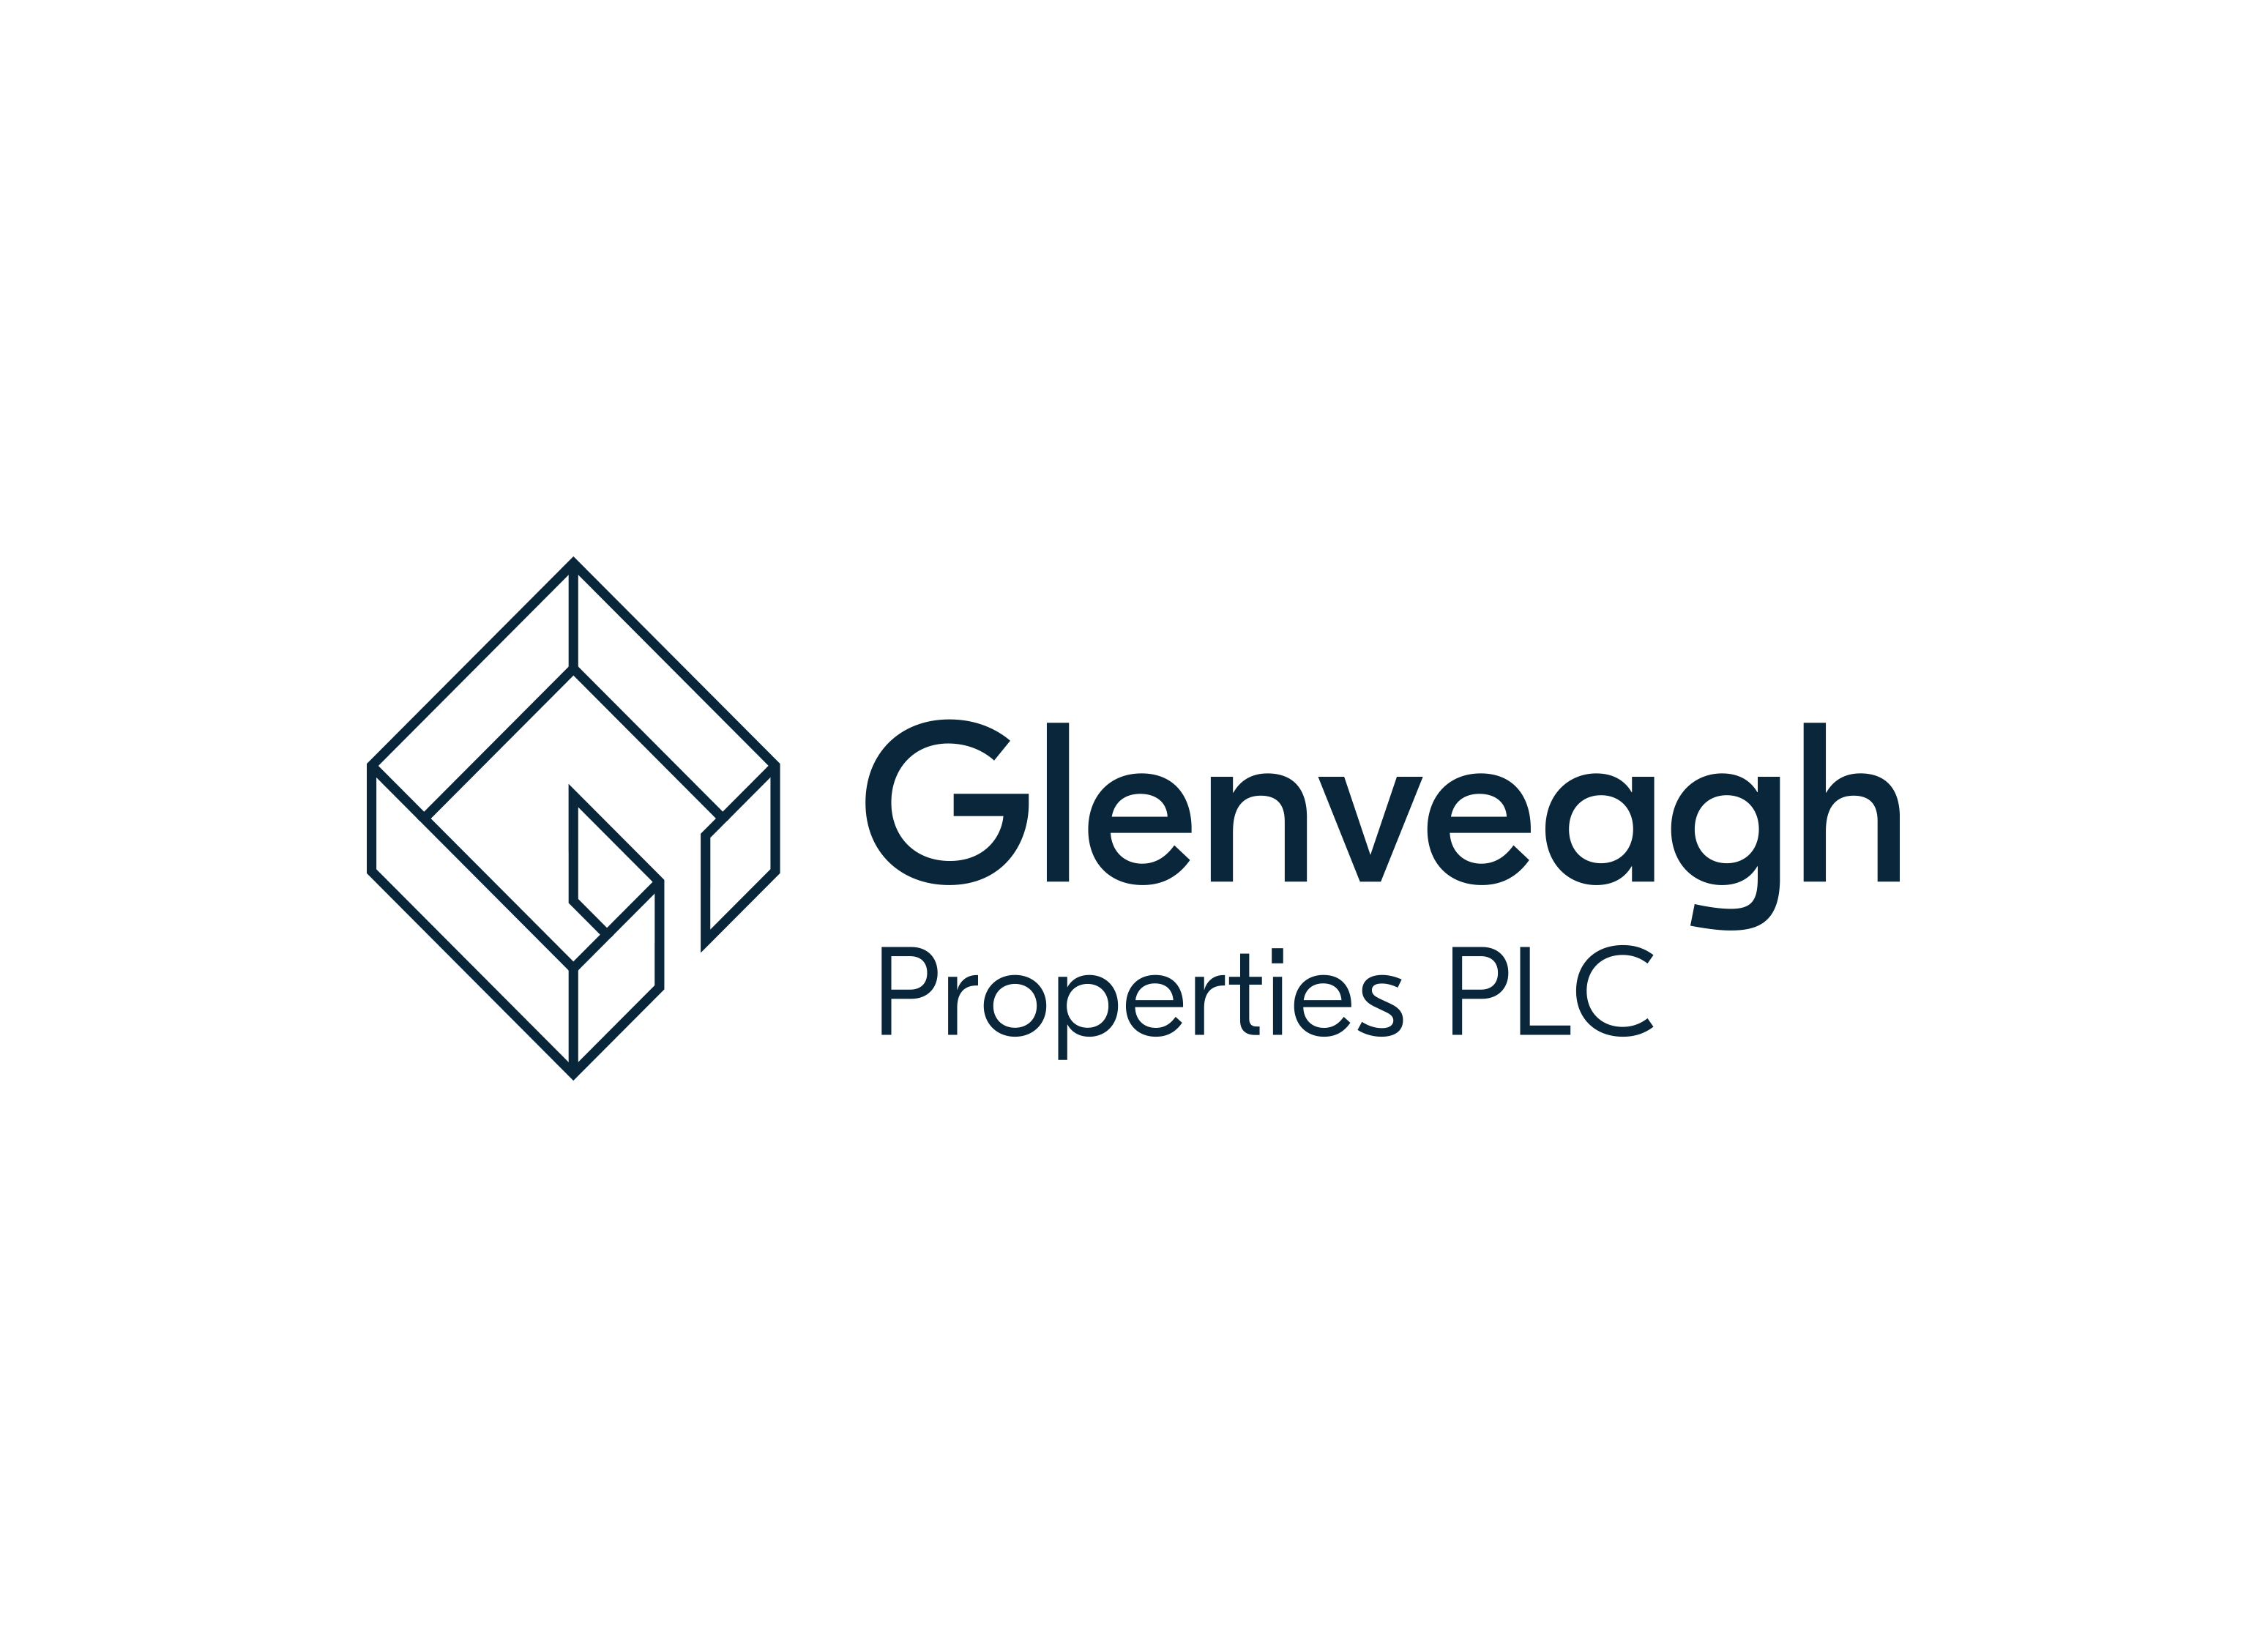 Glenveagh Properties PLC trading statement for 2018